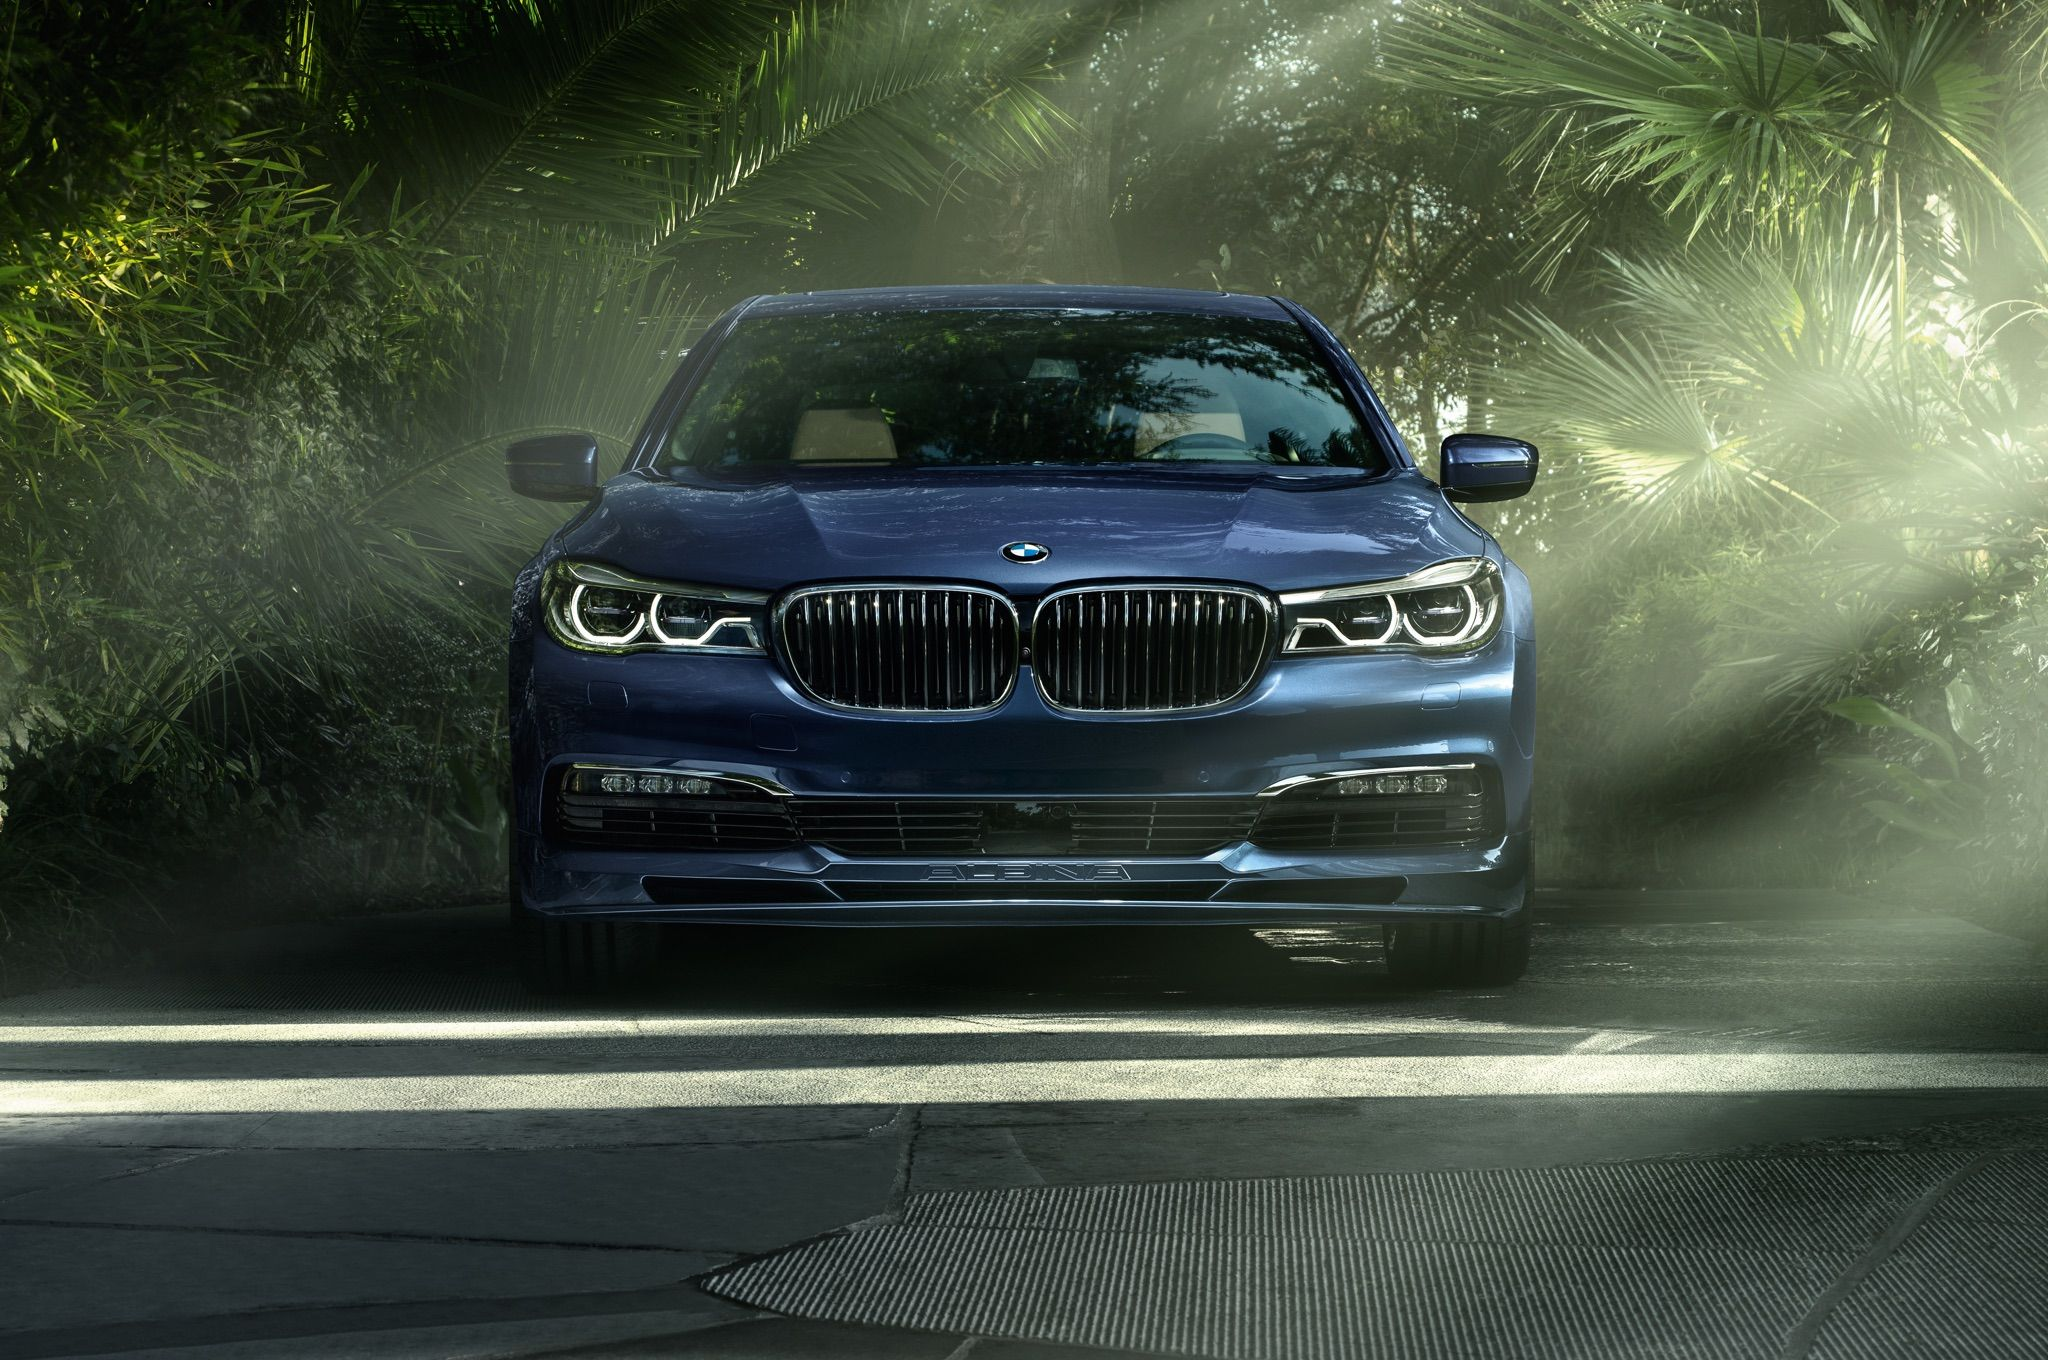 alpina is patrol tuner bmw gear price sedan series slide ultimate sport the review